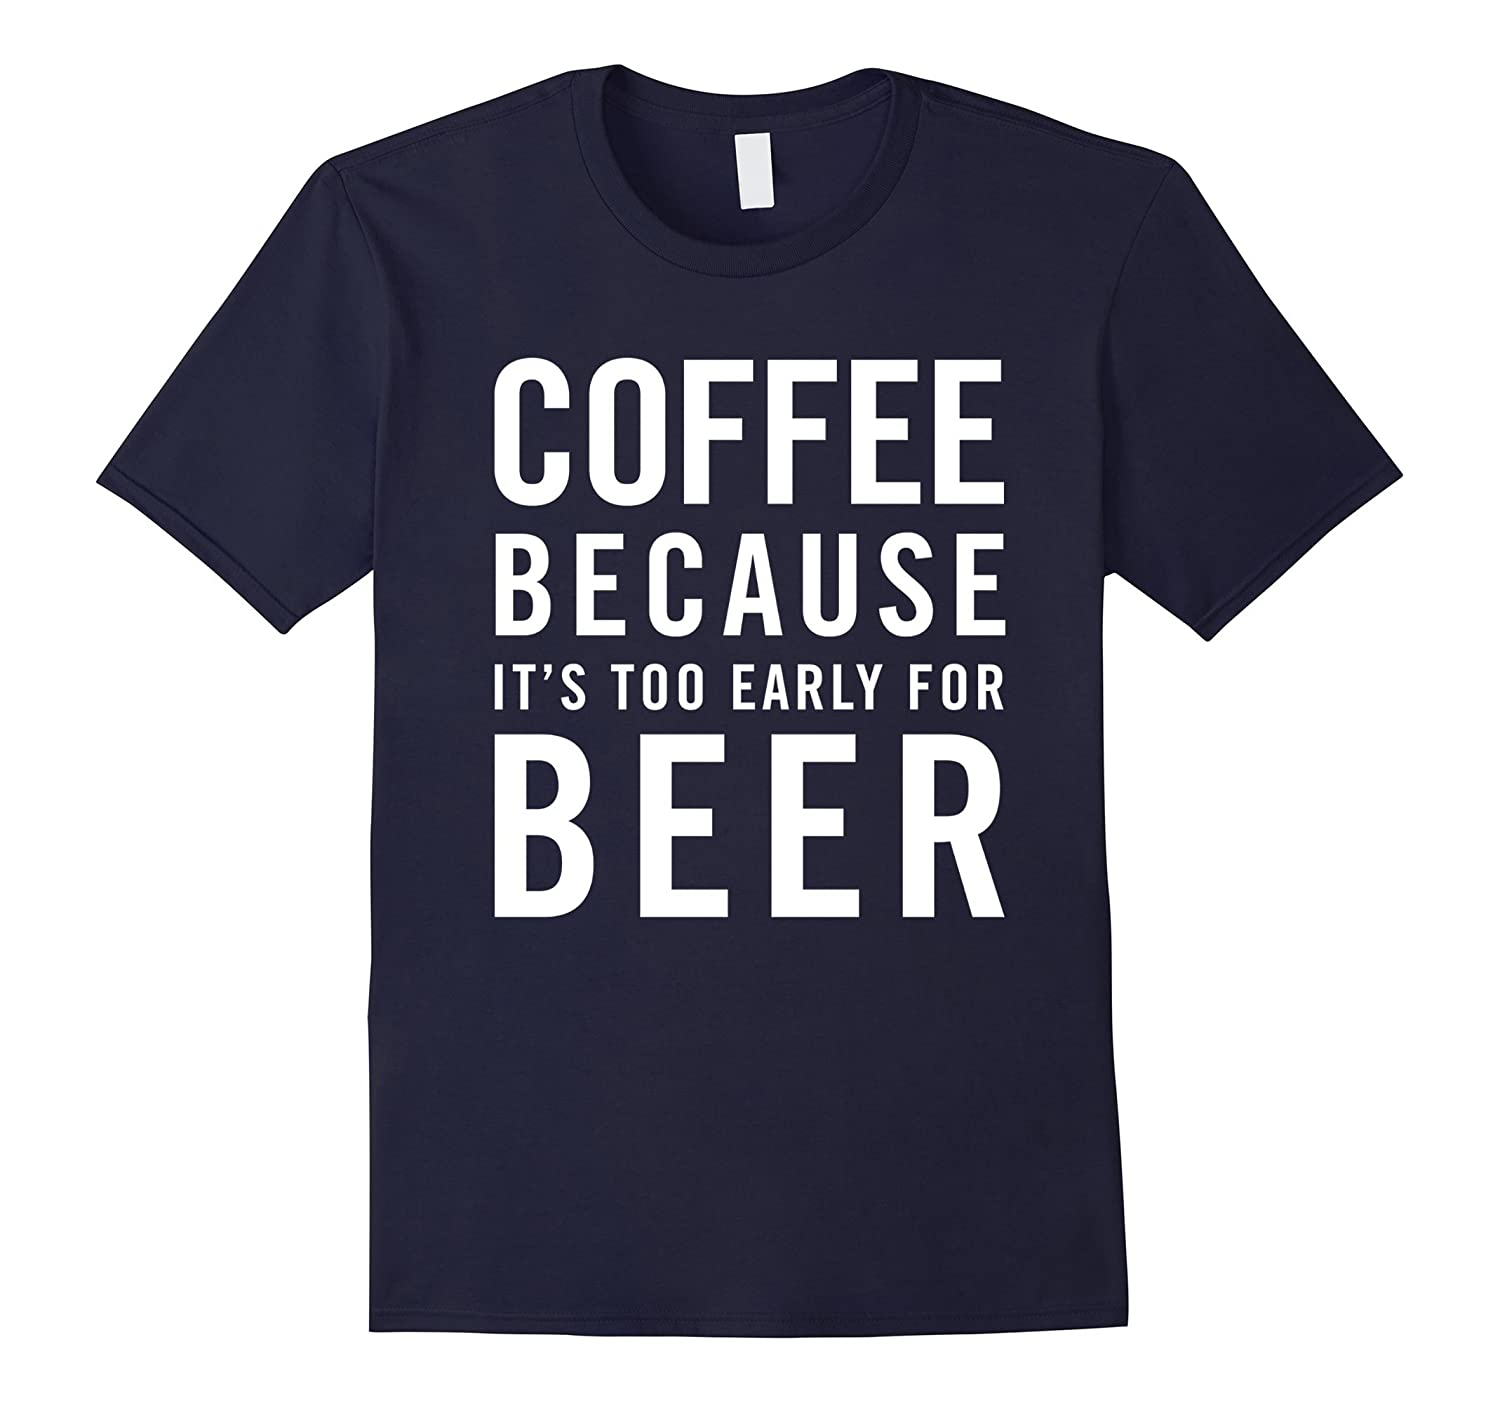 Coffee because it's too early for Beer Funny Drunk Humor Tee-CL